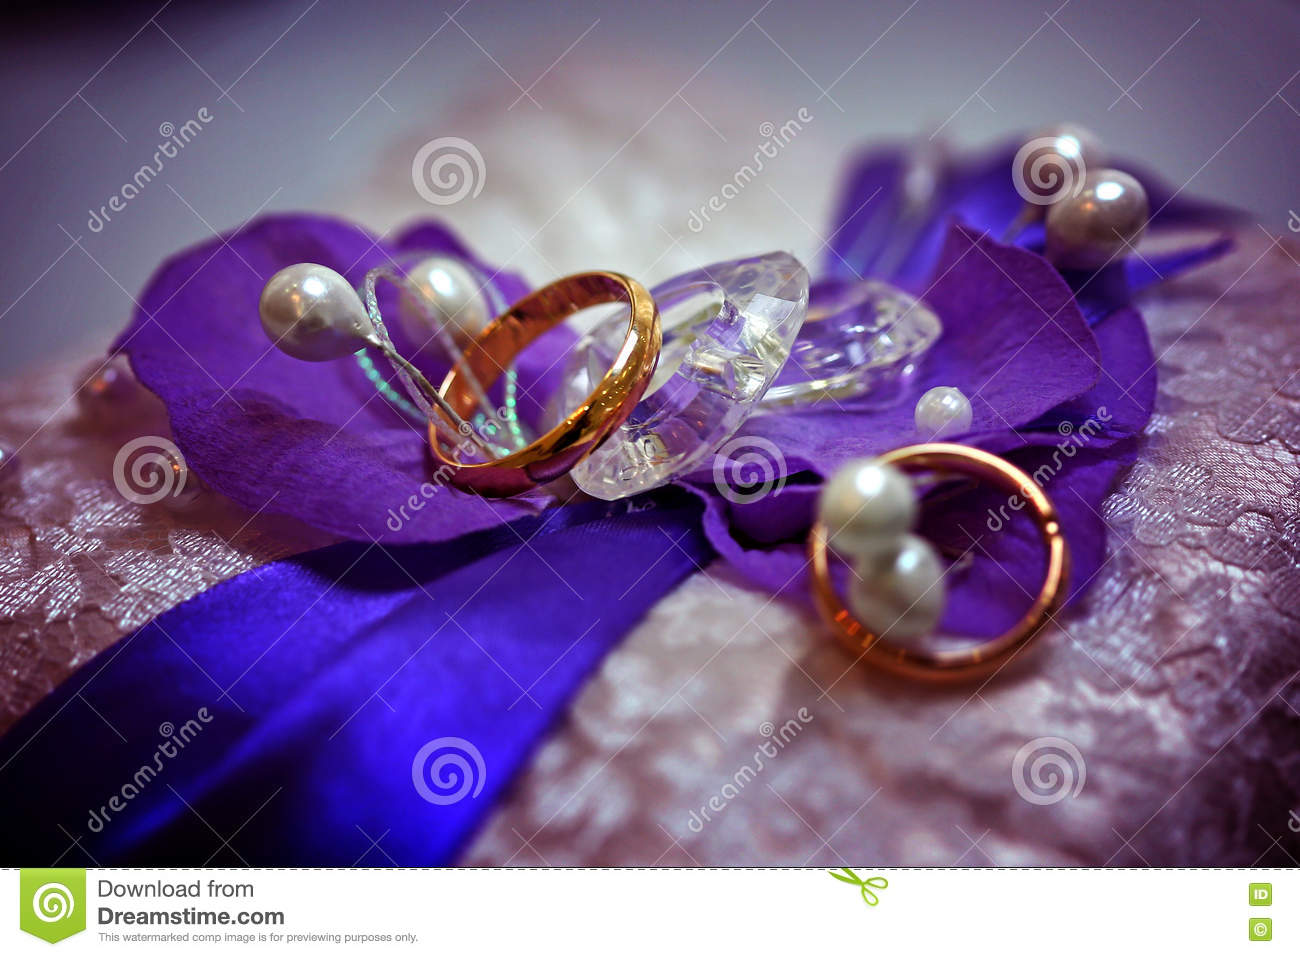 two golden wedding rings on purple background with stones